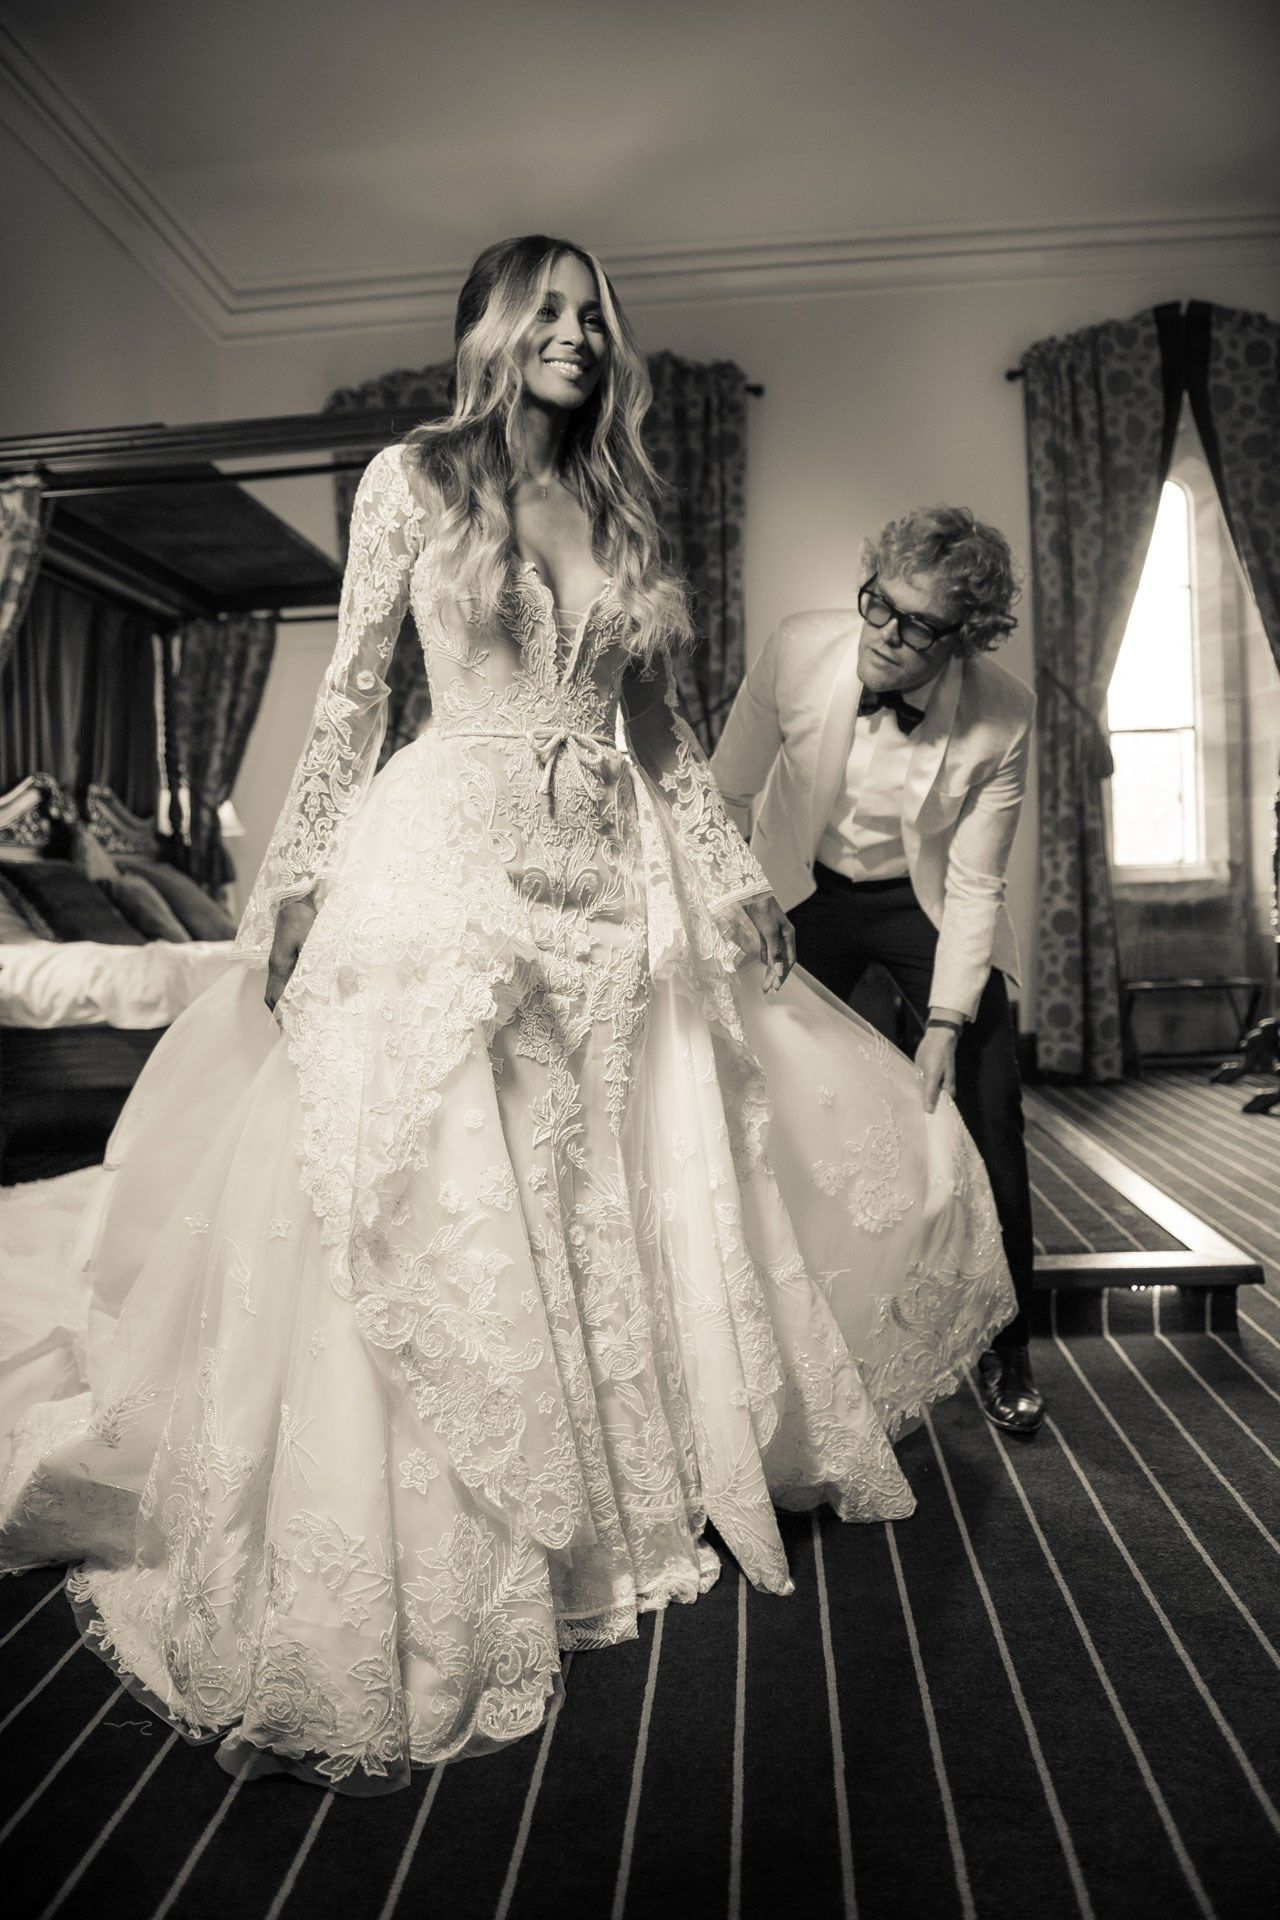 The story behind a couture wedding dress wedding dress couture peter dundas reveals to vogue what went into making ciaras couture wedding gown ombrellifo Images